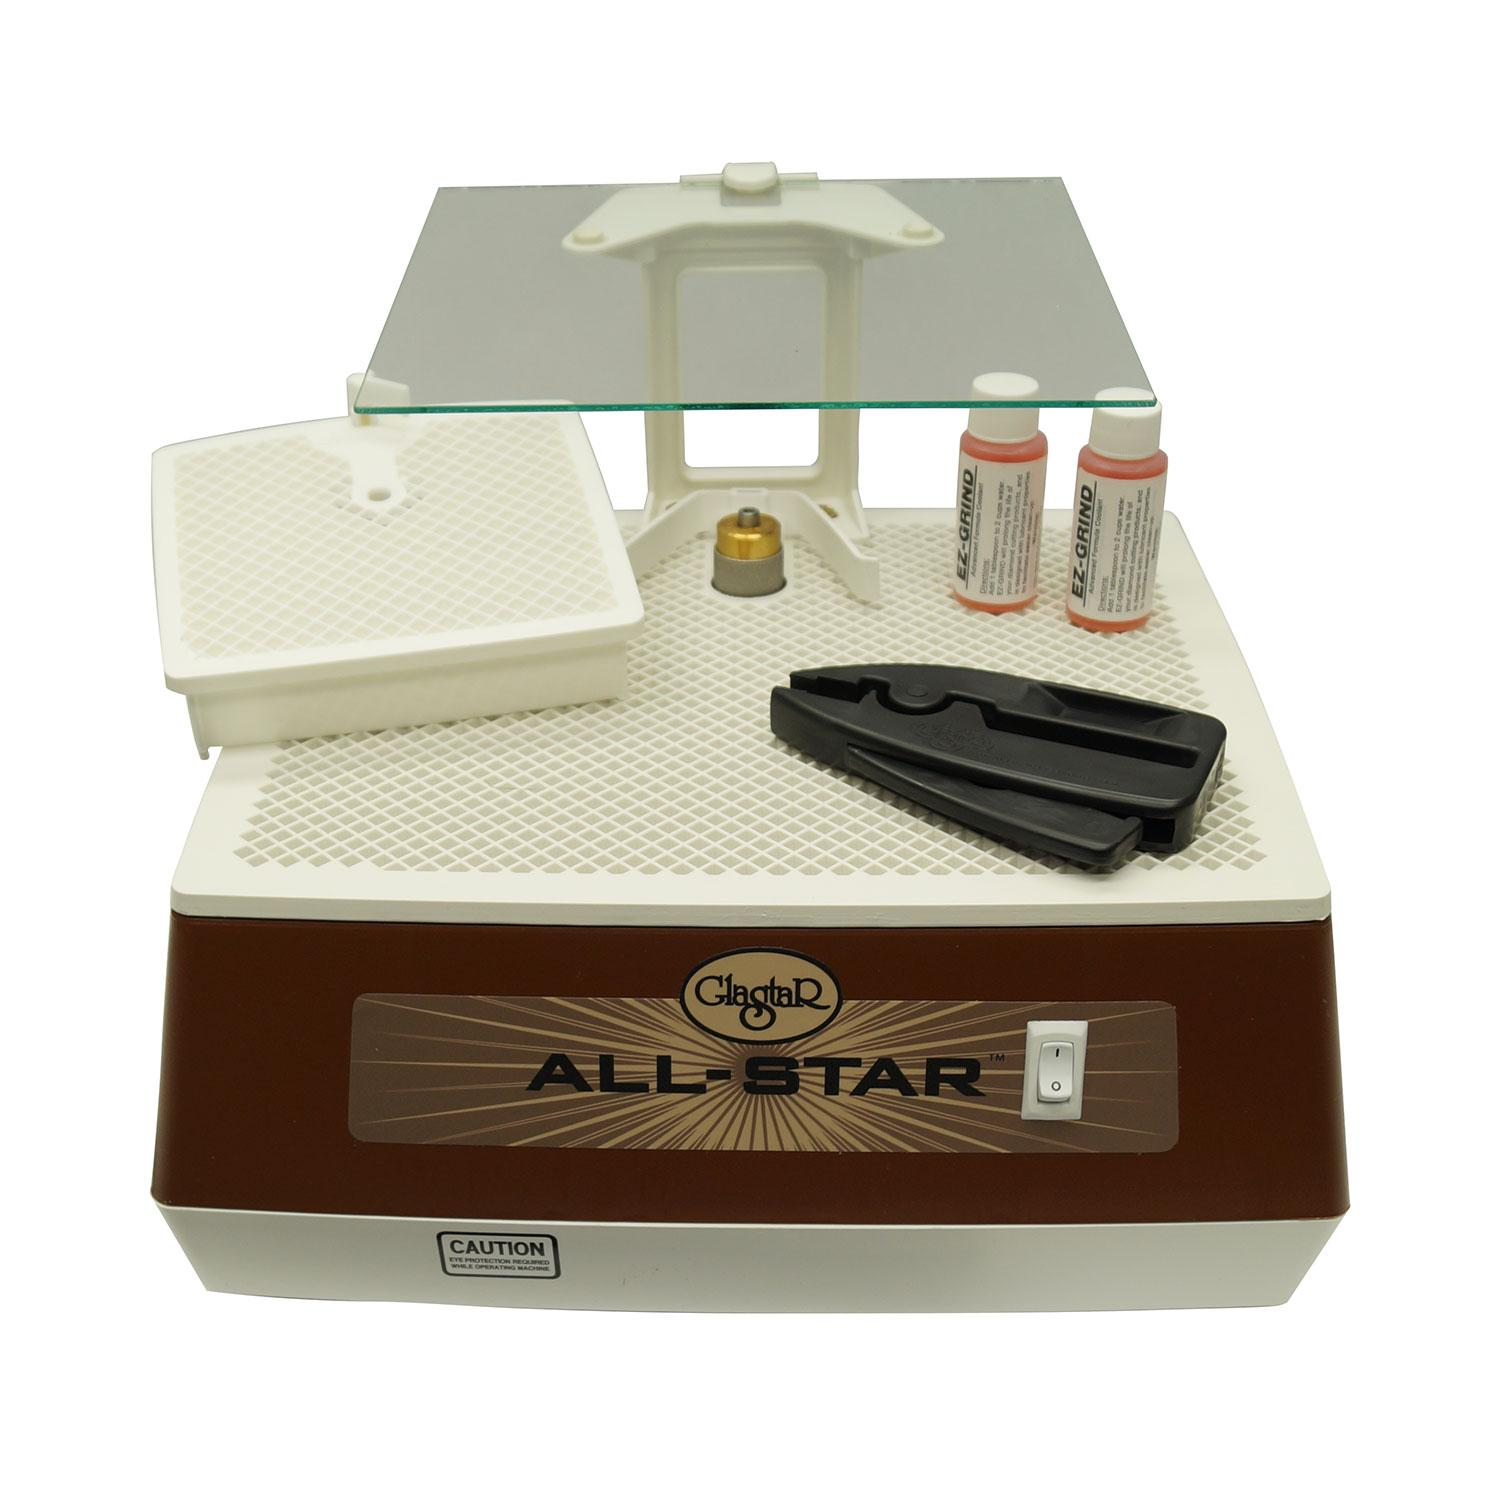 Glastar All Star G8 Grinder With Freebies